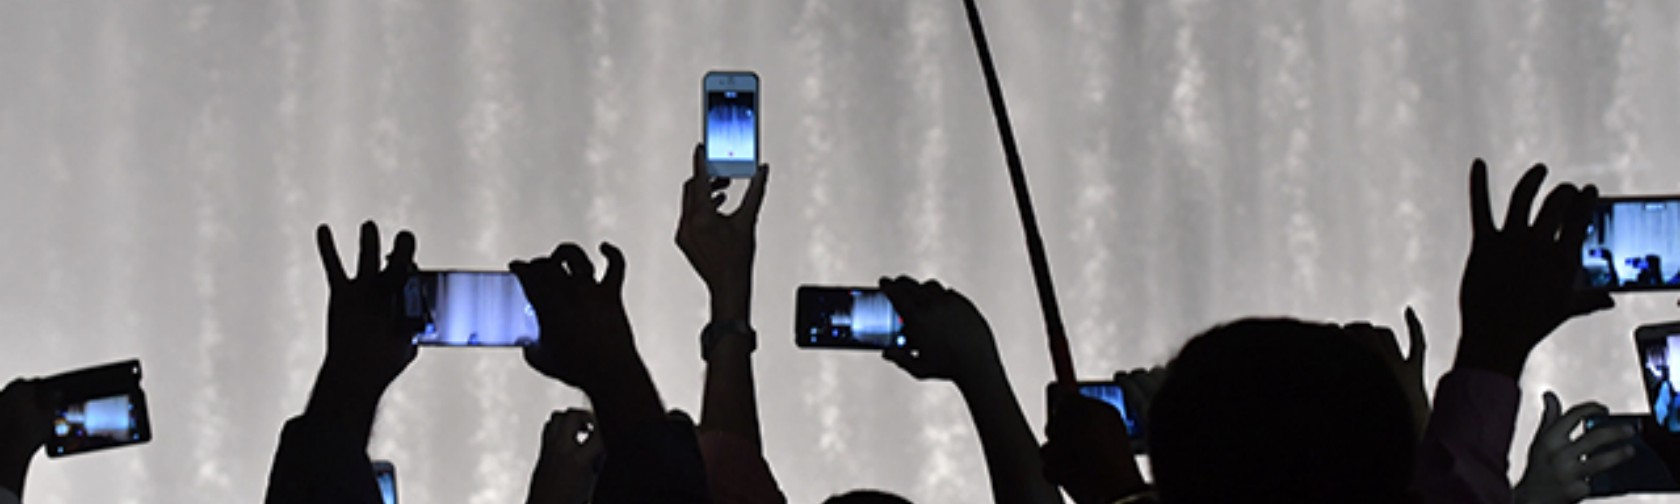 f2700ad6f43d27 10 facts about smartphones as the iPhone turns 10